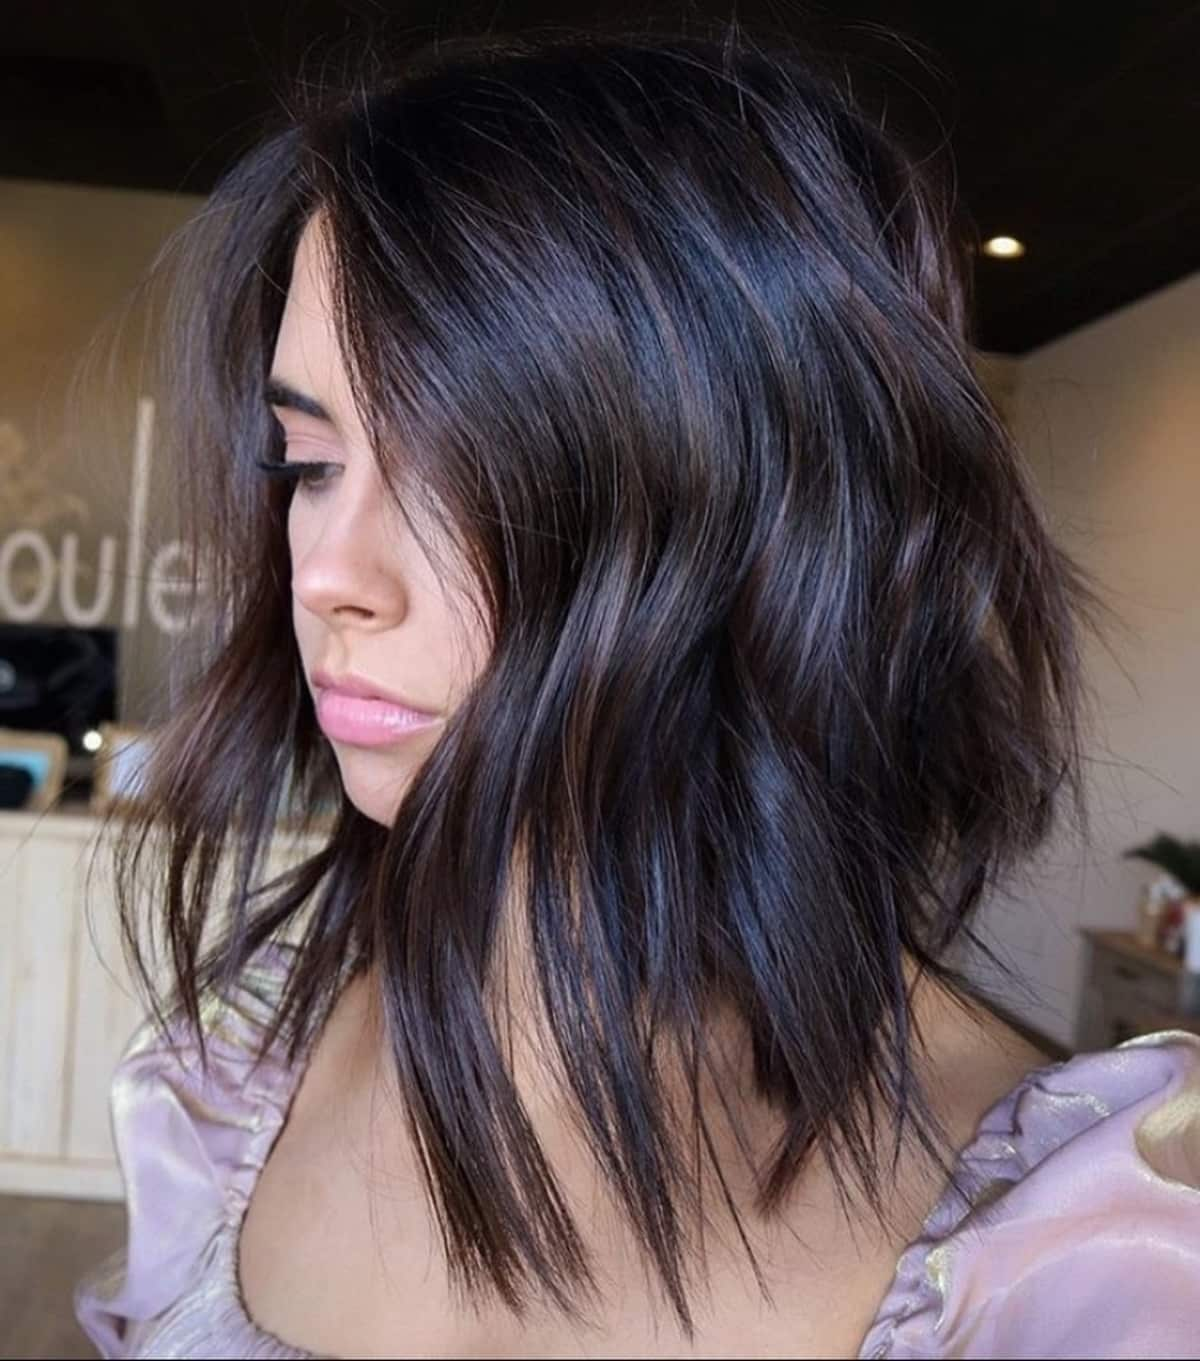 20 Fantastic Short to Medium Layered Haircuts for That In-Between Length